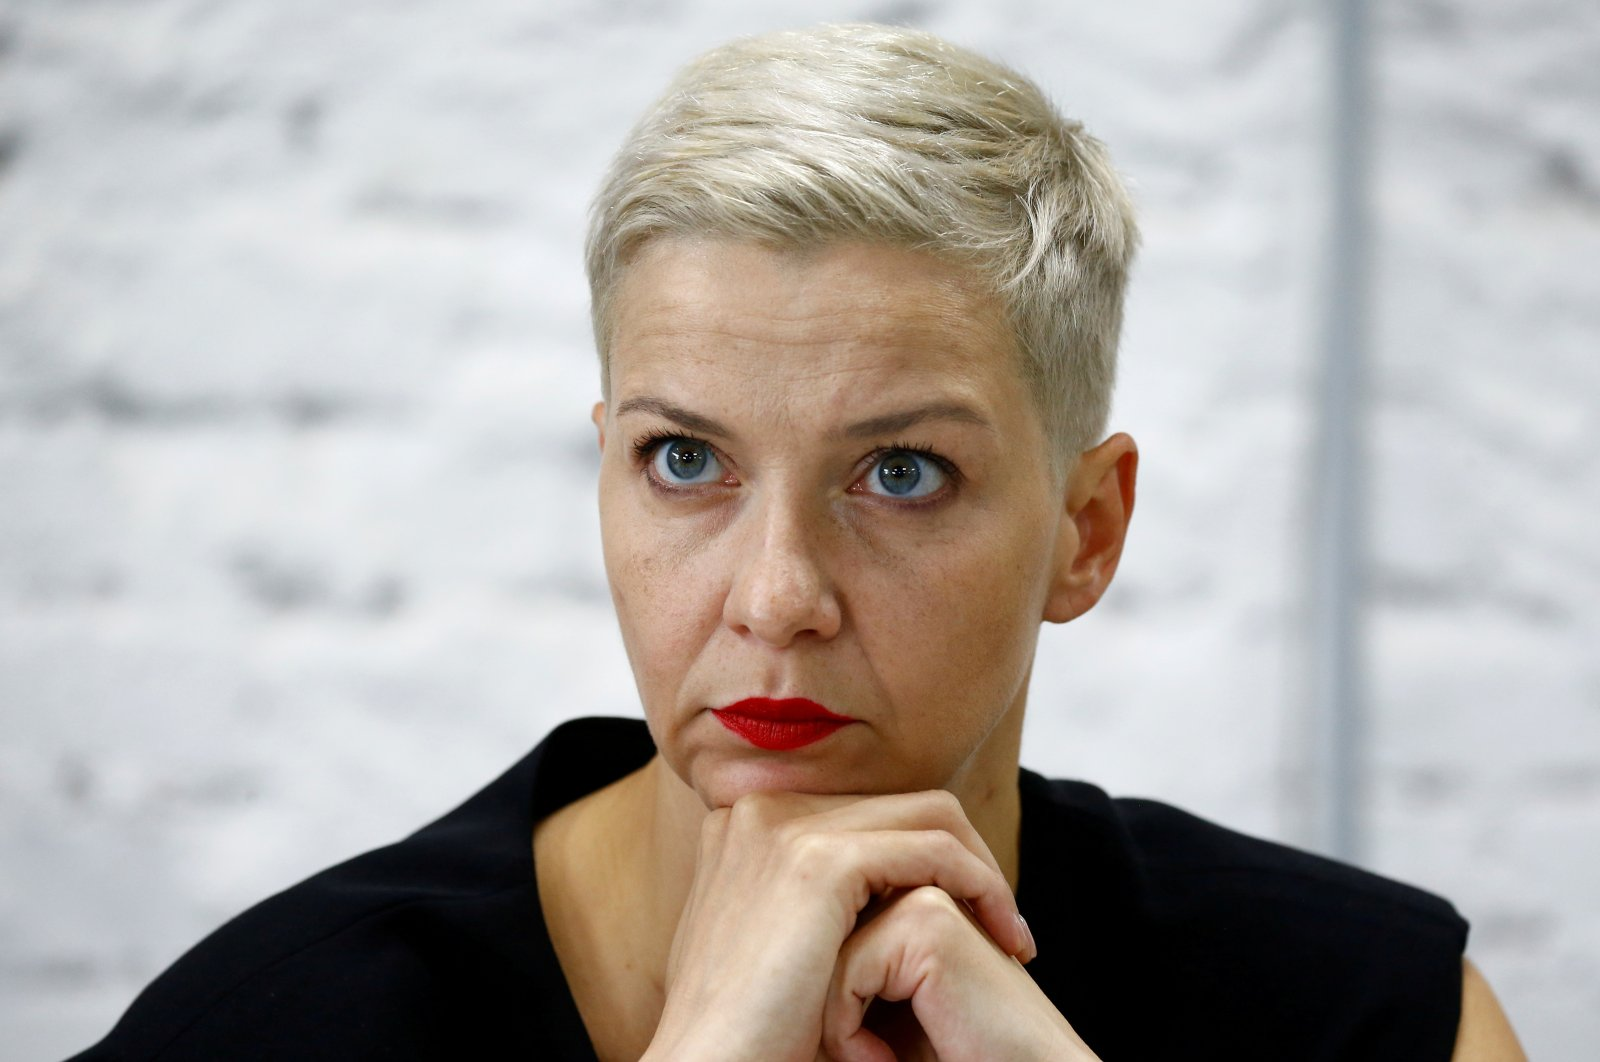 Politician and representative of the Coordination Council for members of the Belarusian opposition Maria Kolesnikova attends a news conference in Minsk, Belarus, Aug. 24, 2020. (Reuters Photo)